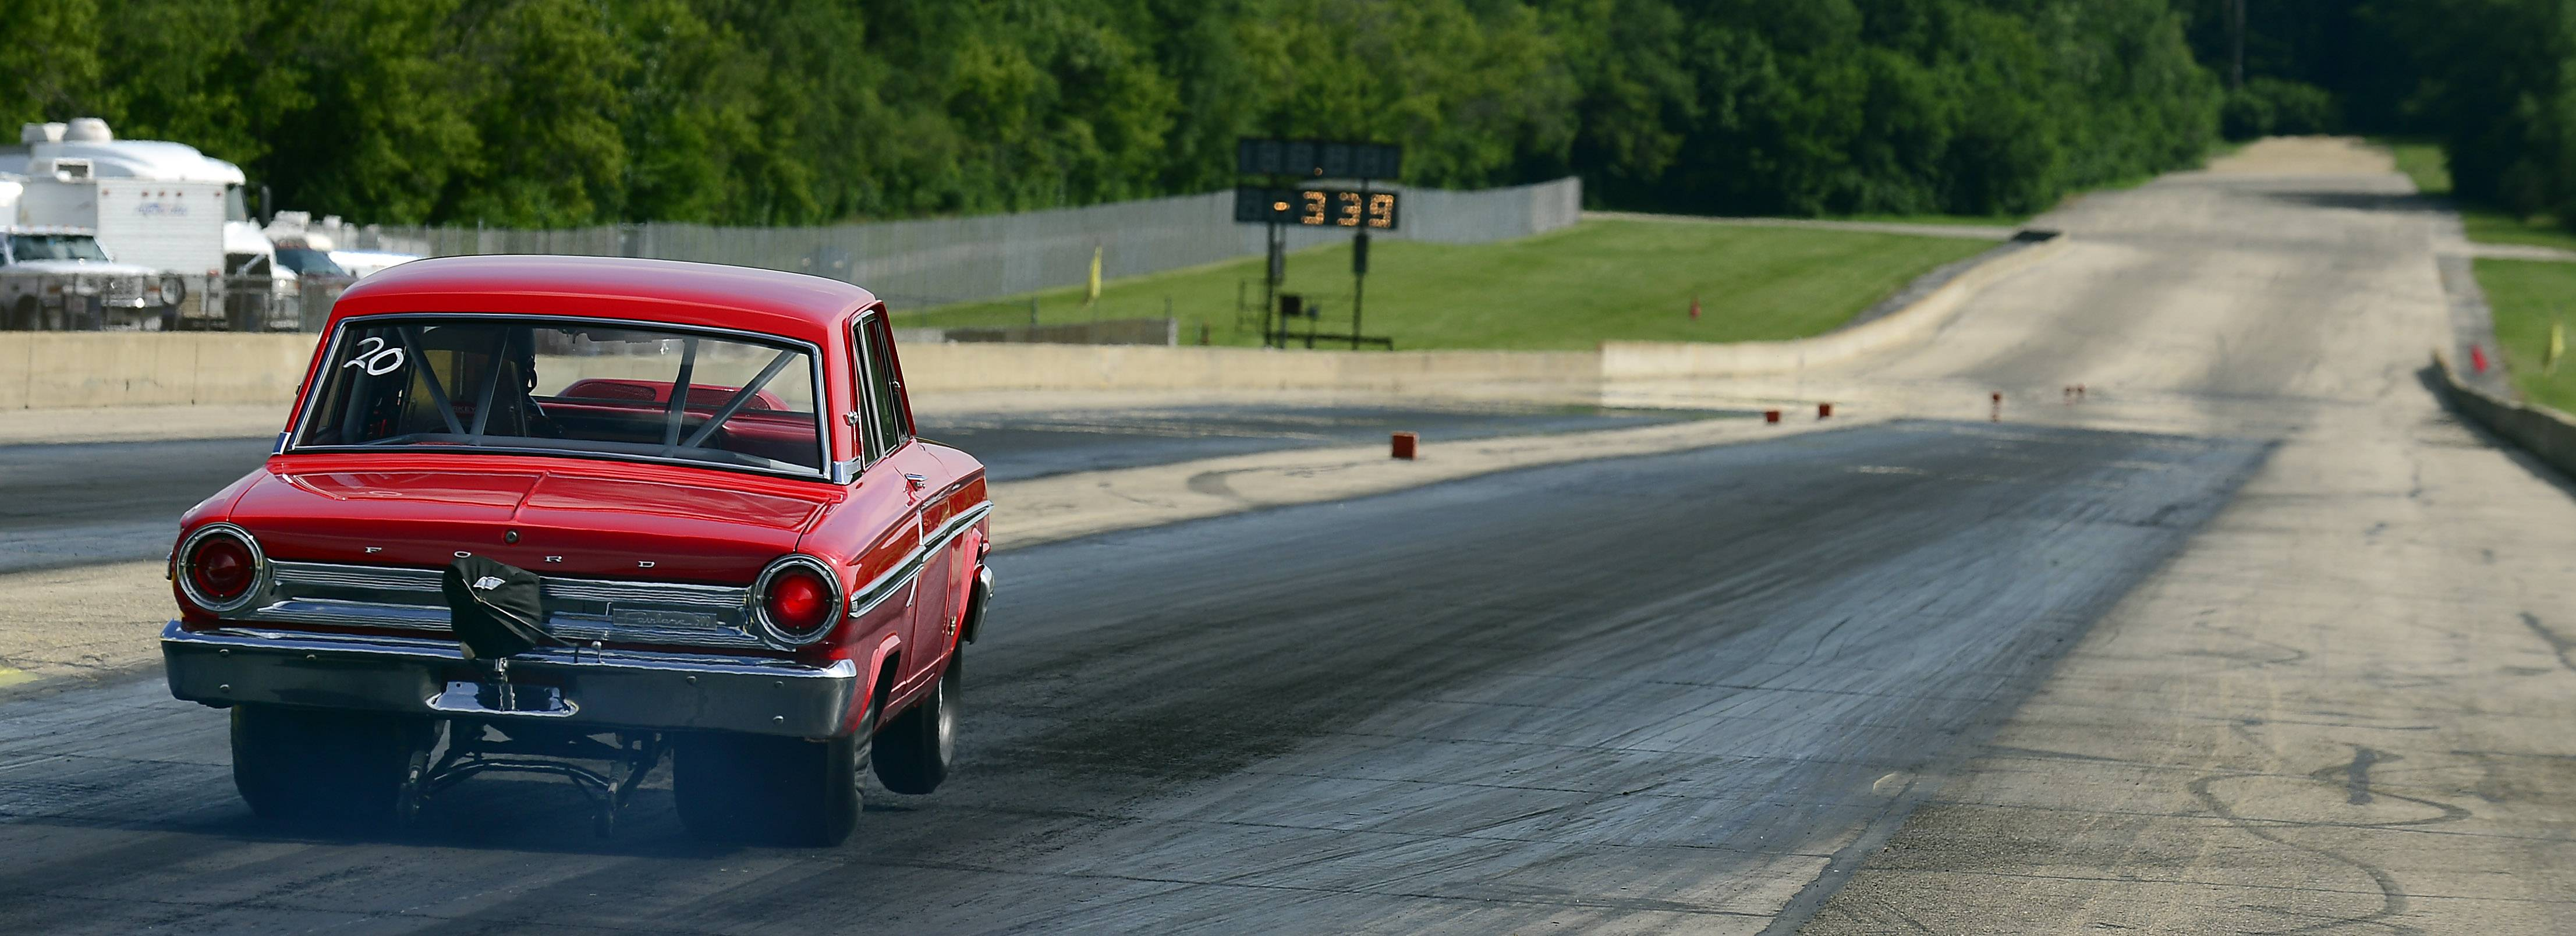 Jones burns rubber down the quarter-mile track at the Byron Dragway.